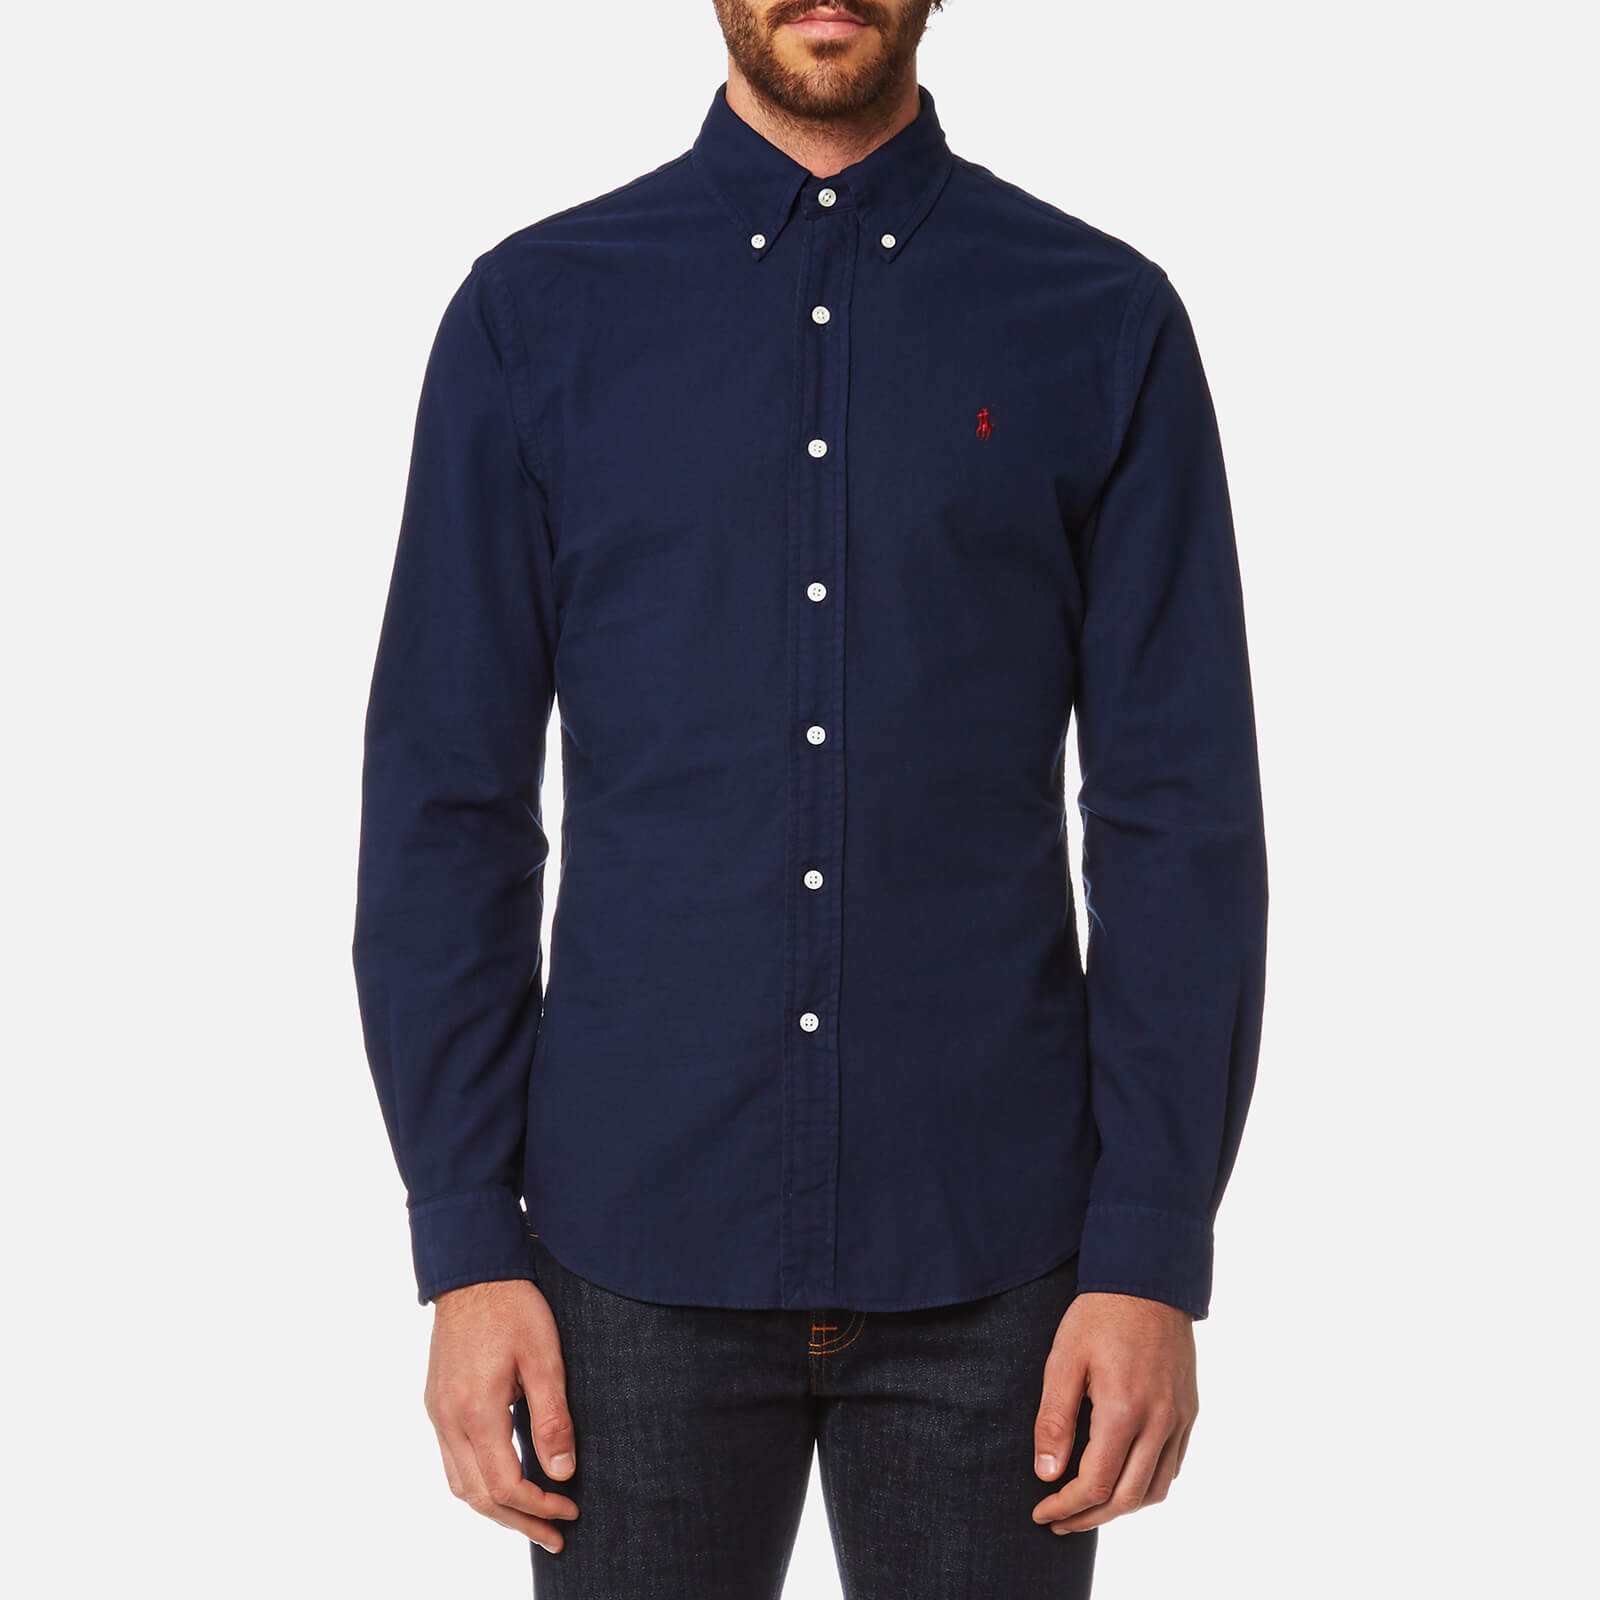 921fef6b7 Polo Ralph Lauren Men s Garment Dye Oxford Shirt - Windsor Navy - Free UK  Delivery over £50